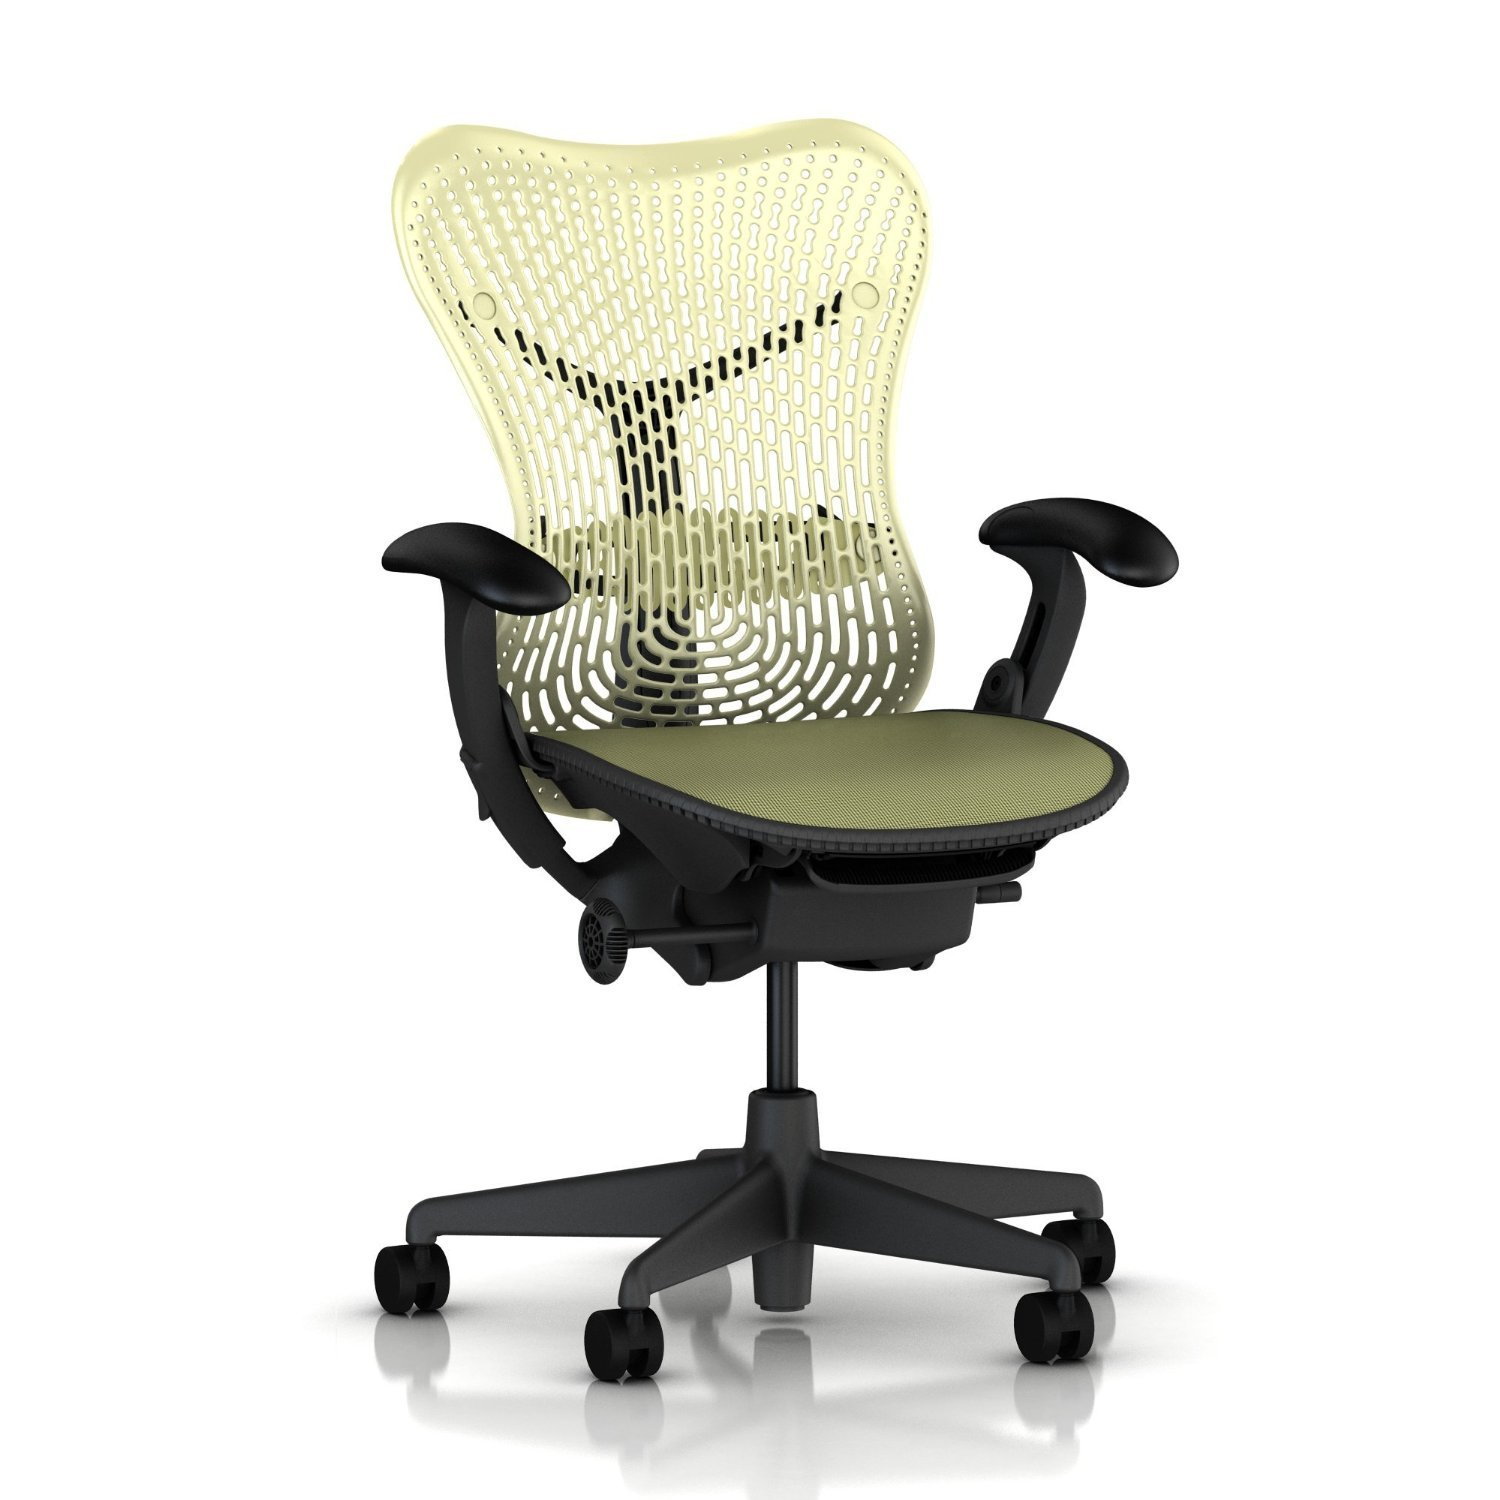 amazoncom herman miller mirra chair fully featured  adjustable  - amazoncom herman miller mirra chair fully featured  adjustable arms flexfront seat  tilt limiter  lumbar support  standard carpet casters